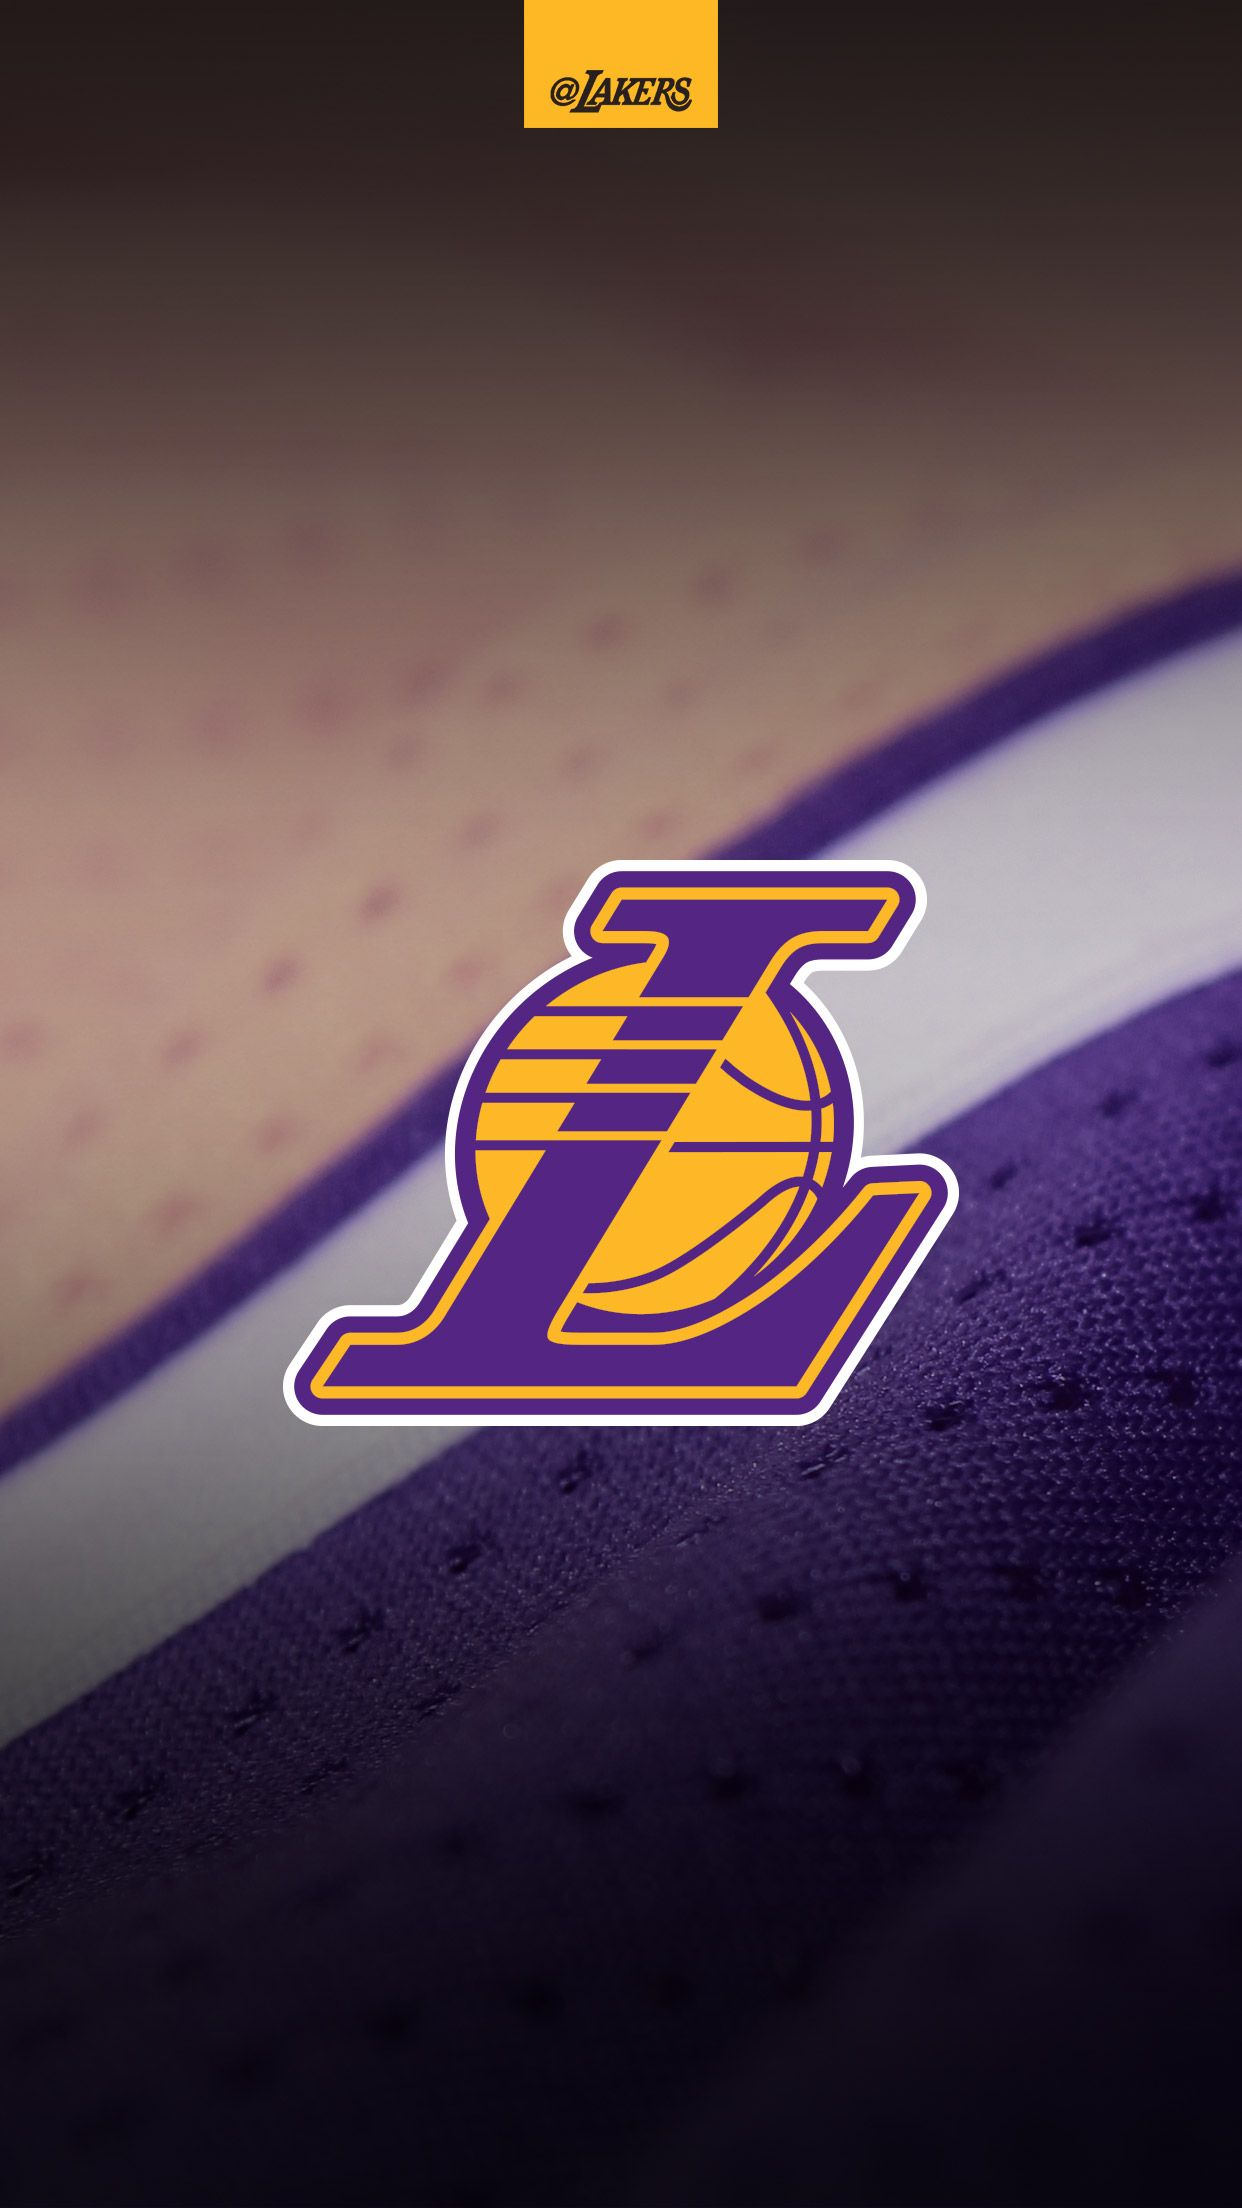 Lakers Wallpaper Iphone 6 Live Wallpaper Hd